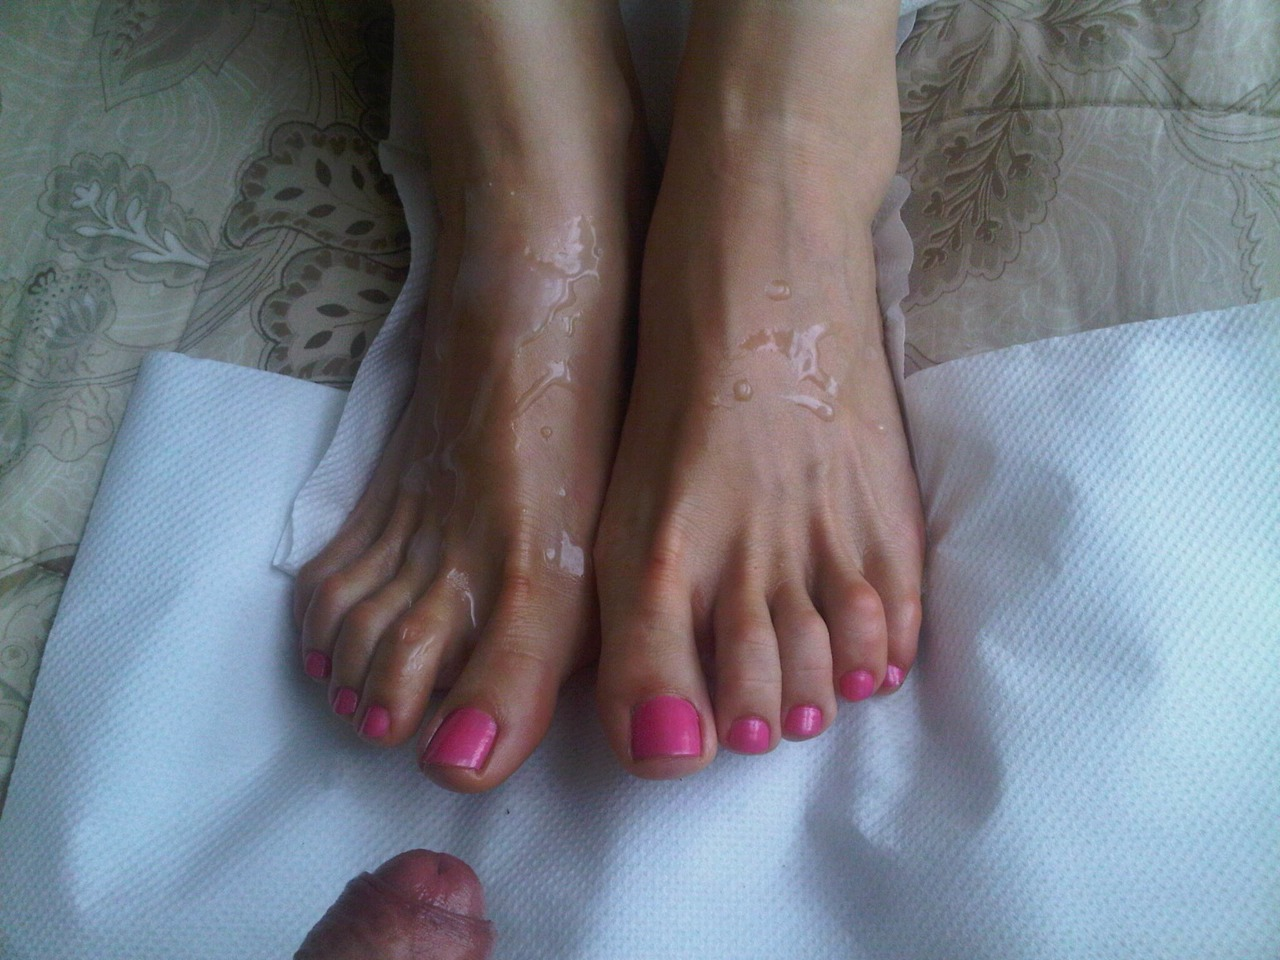 Remarkable, very Fetish ring toe consider